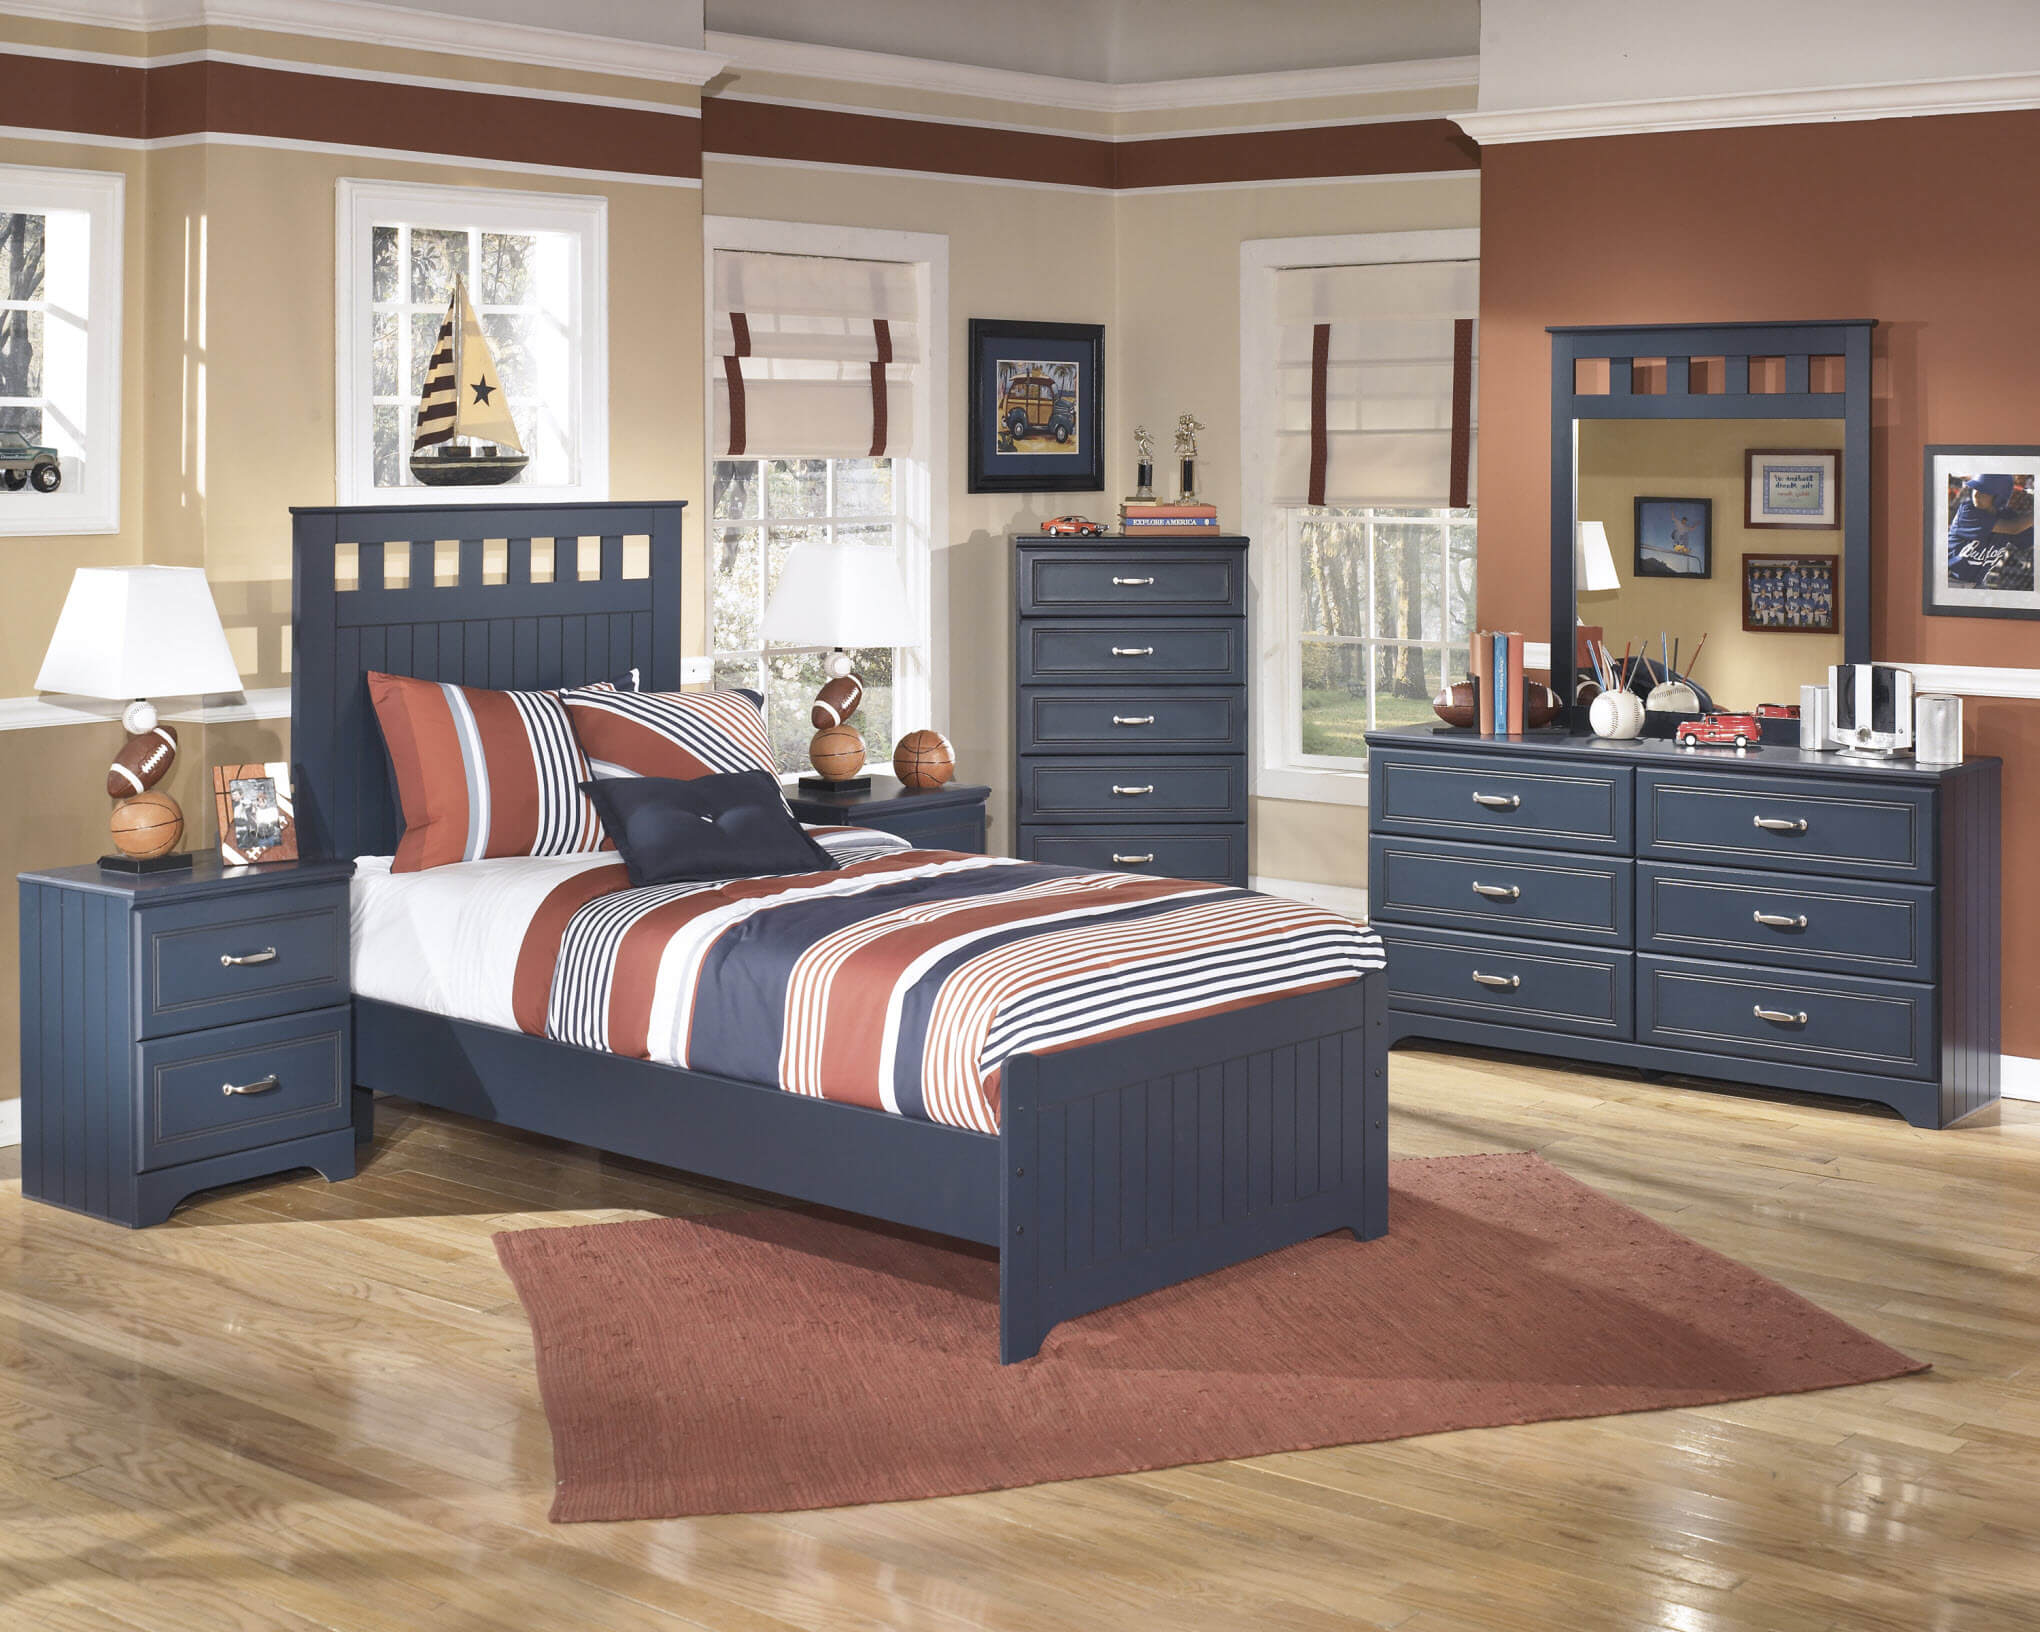 awesome ashley youth bedroom furniture ideas - 3d house designs